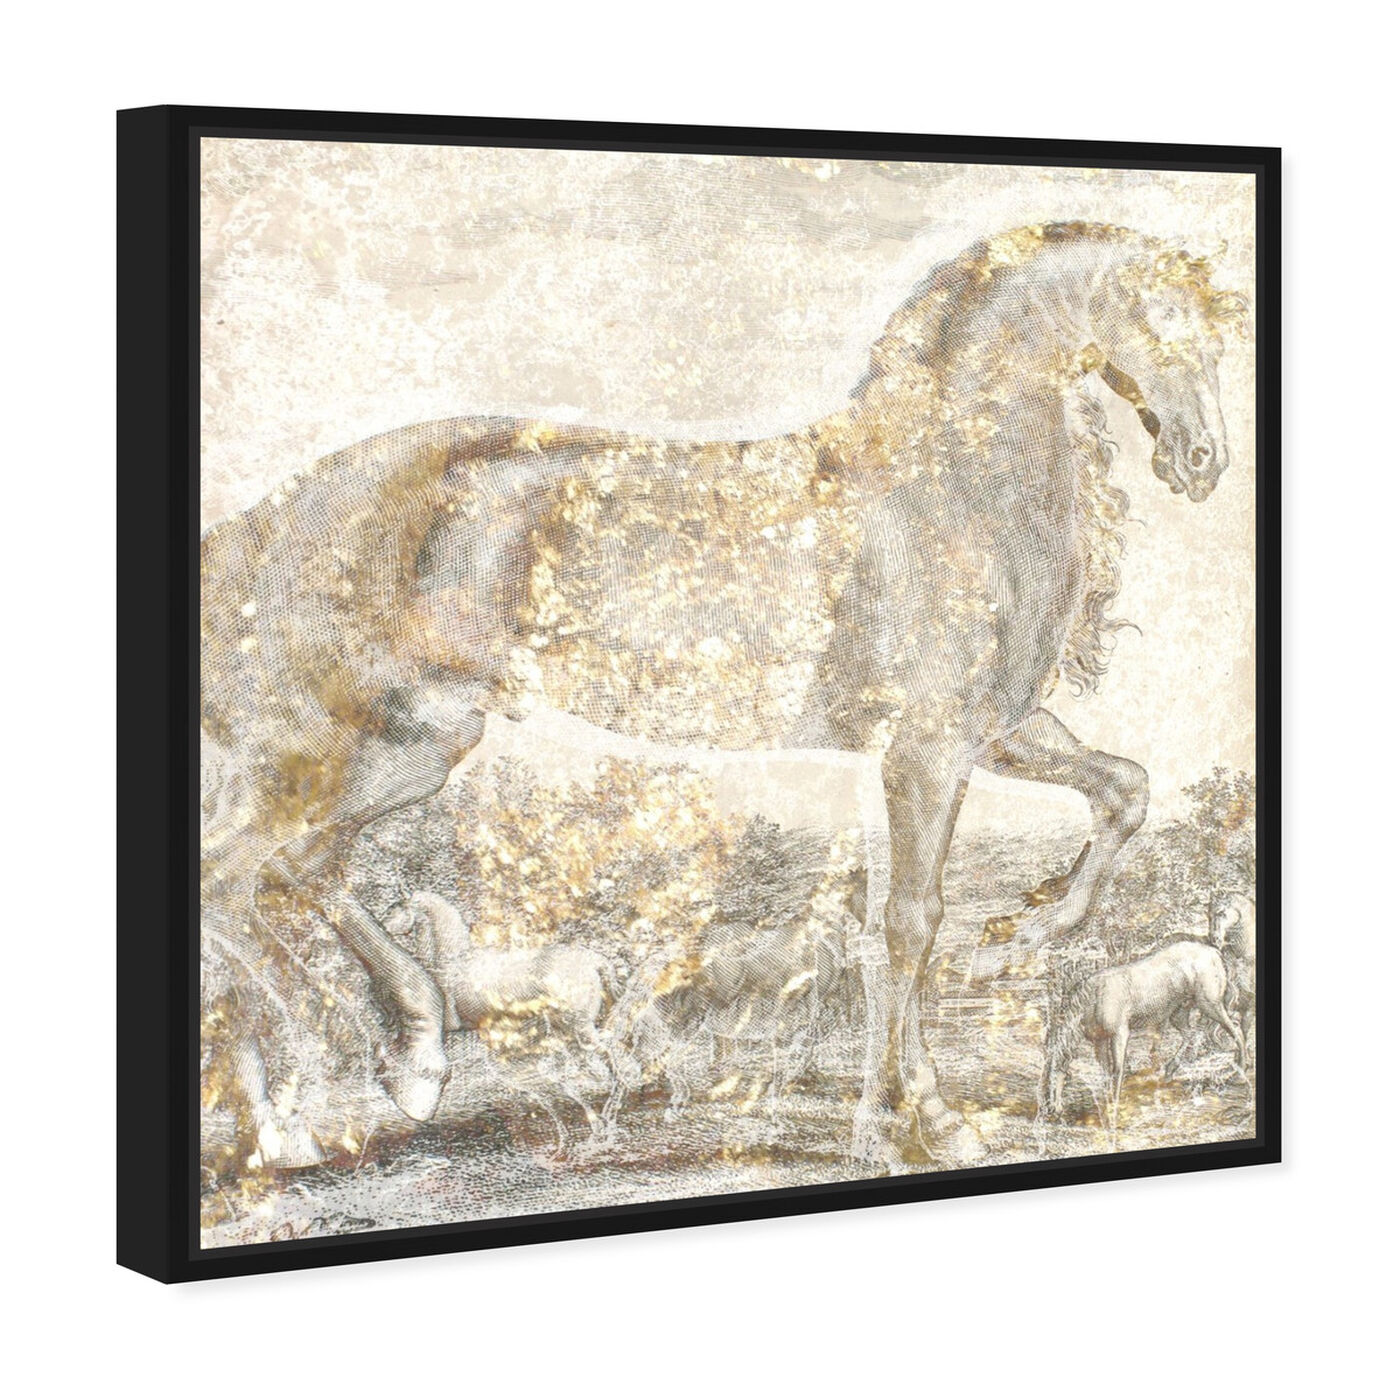 Angled view of Brilliant Equestrian featuring animals and farm animals art.